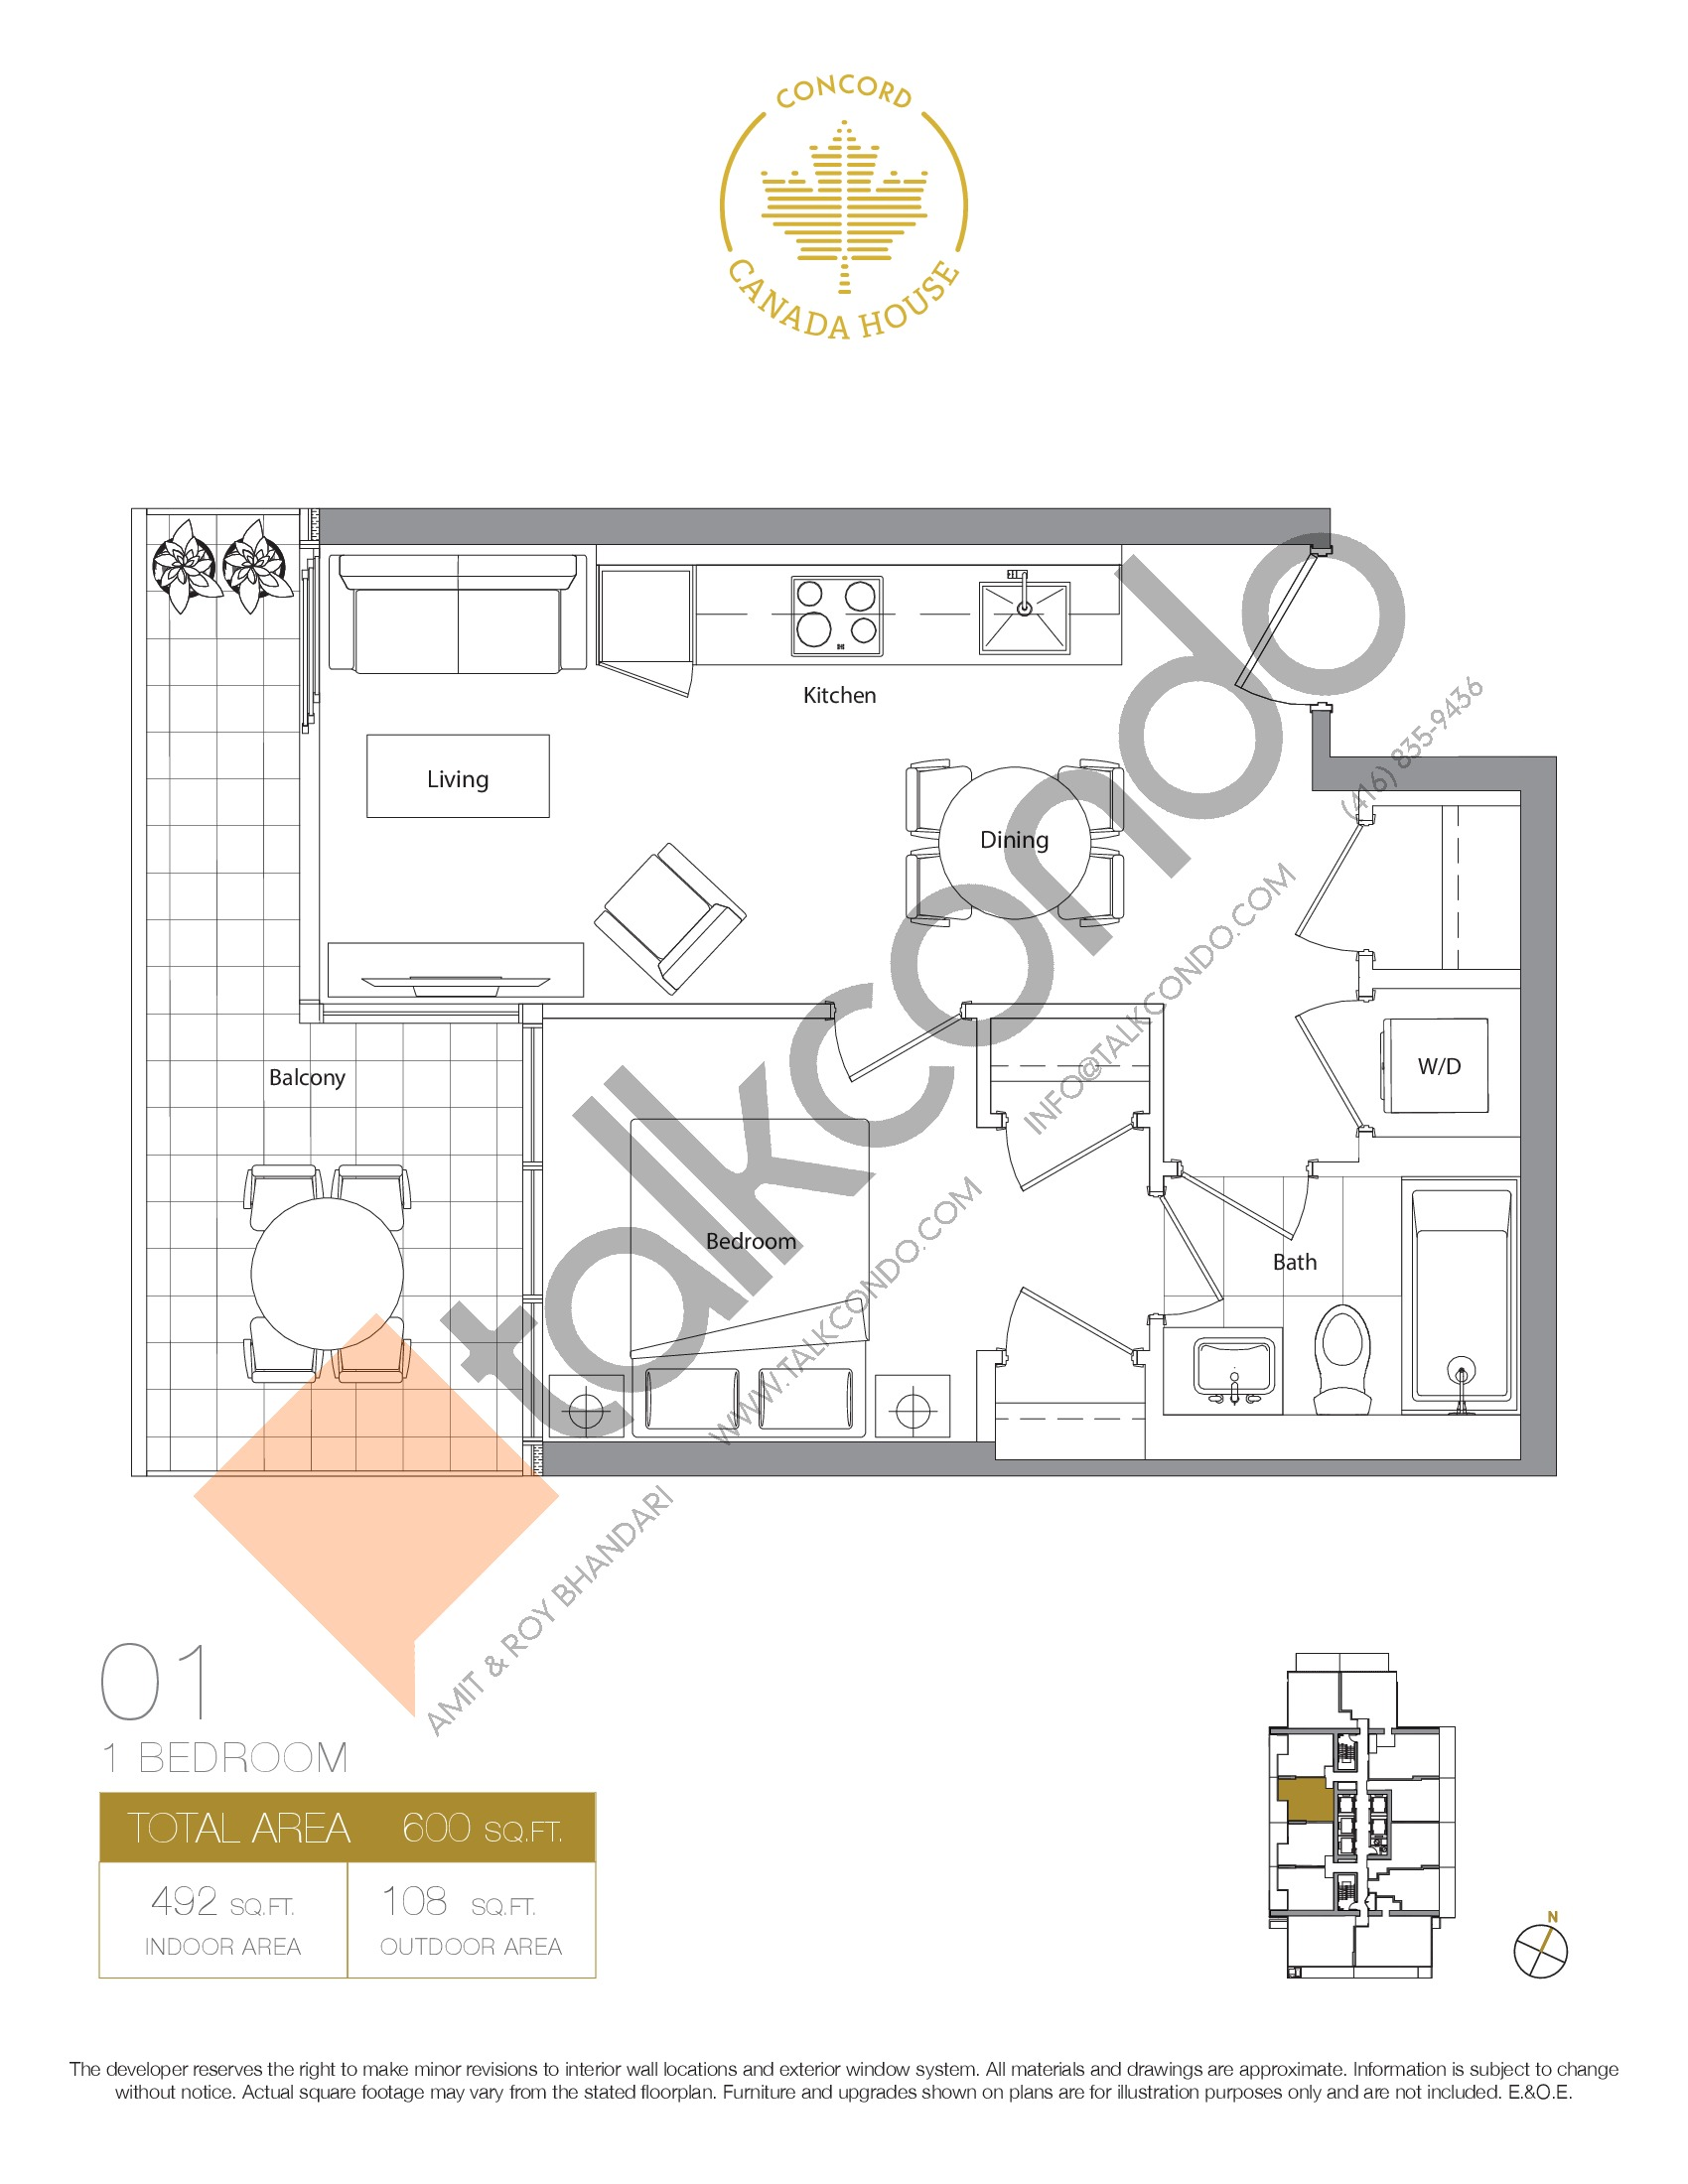 01 - West Tower Floor Plan at Concord Canada House Condos - 492 sq.ft